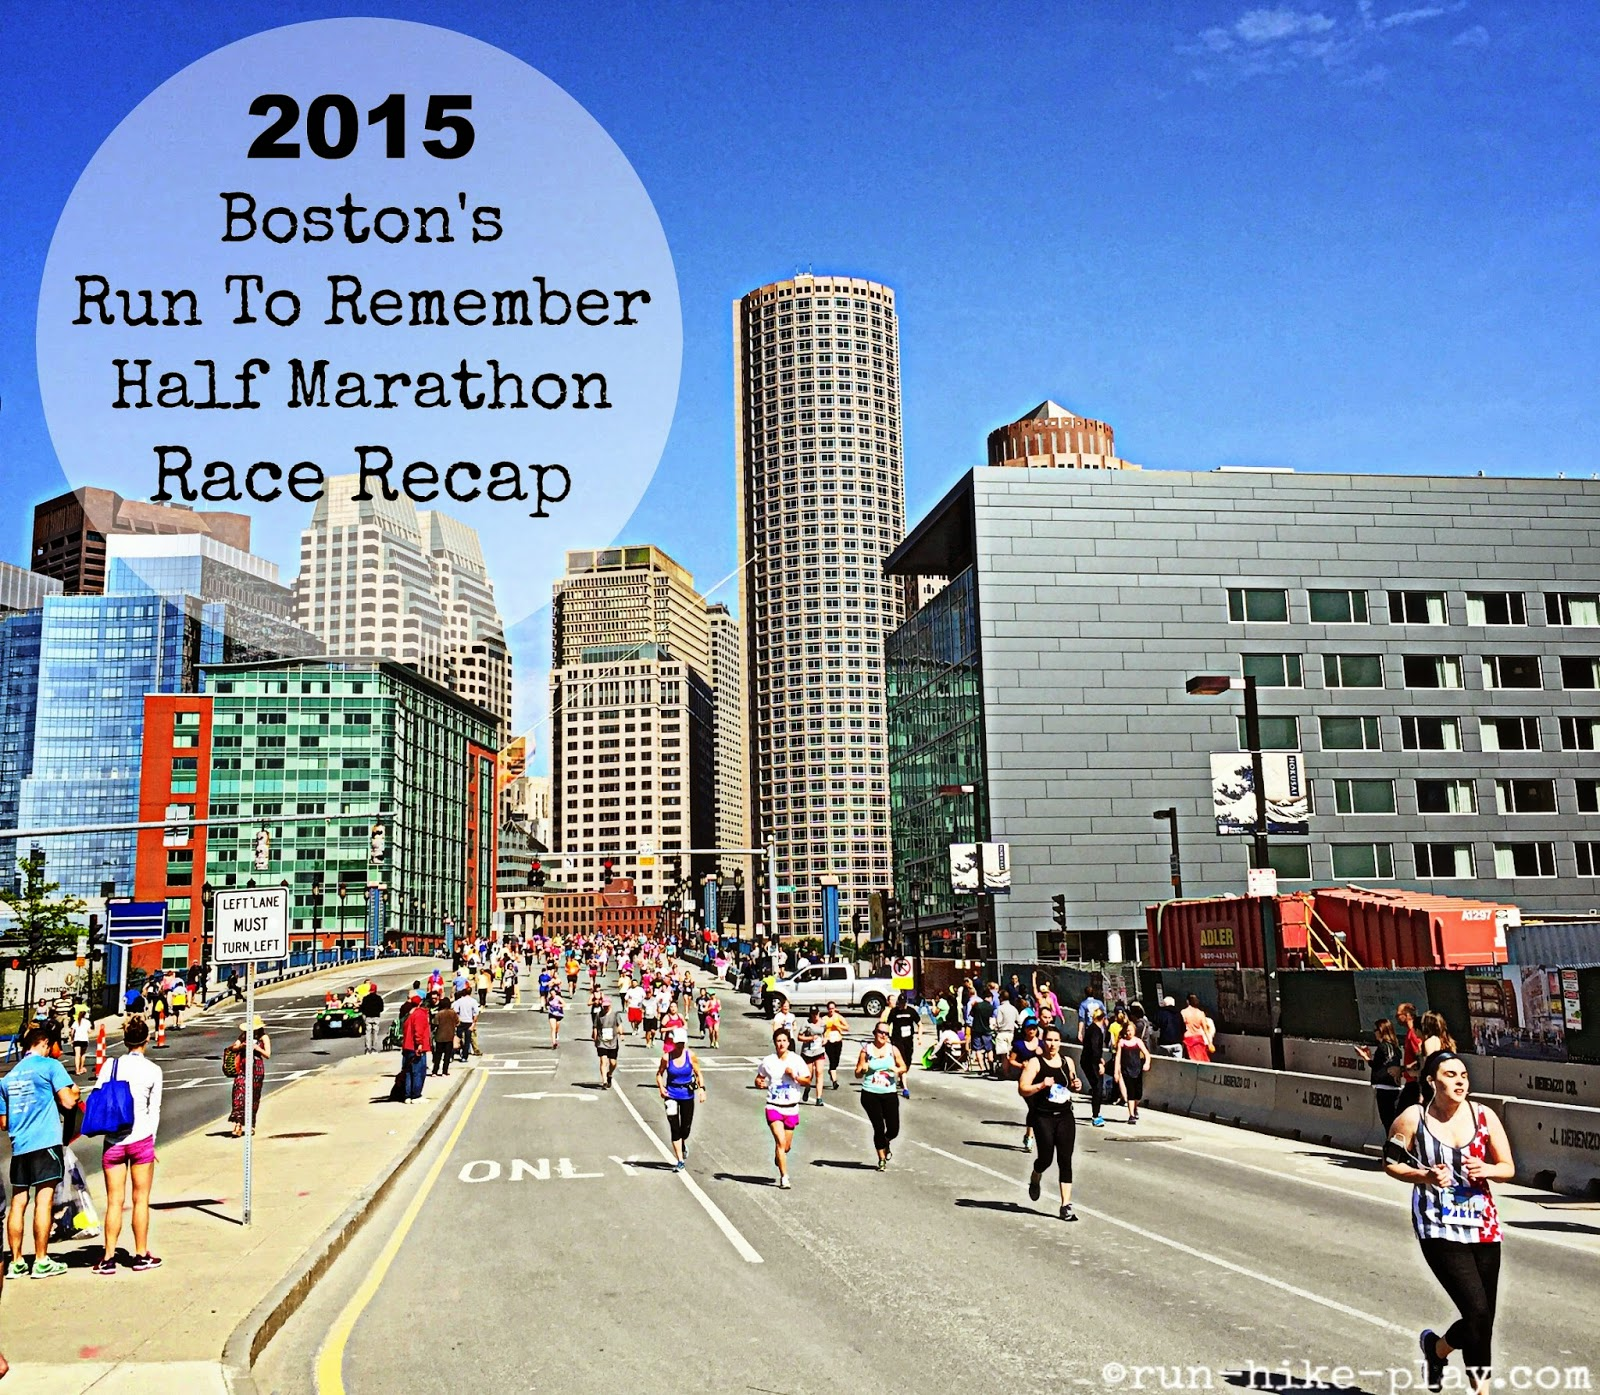 Boston's Run To Remember - View The Race